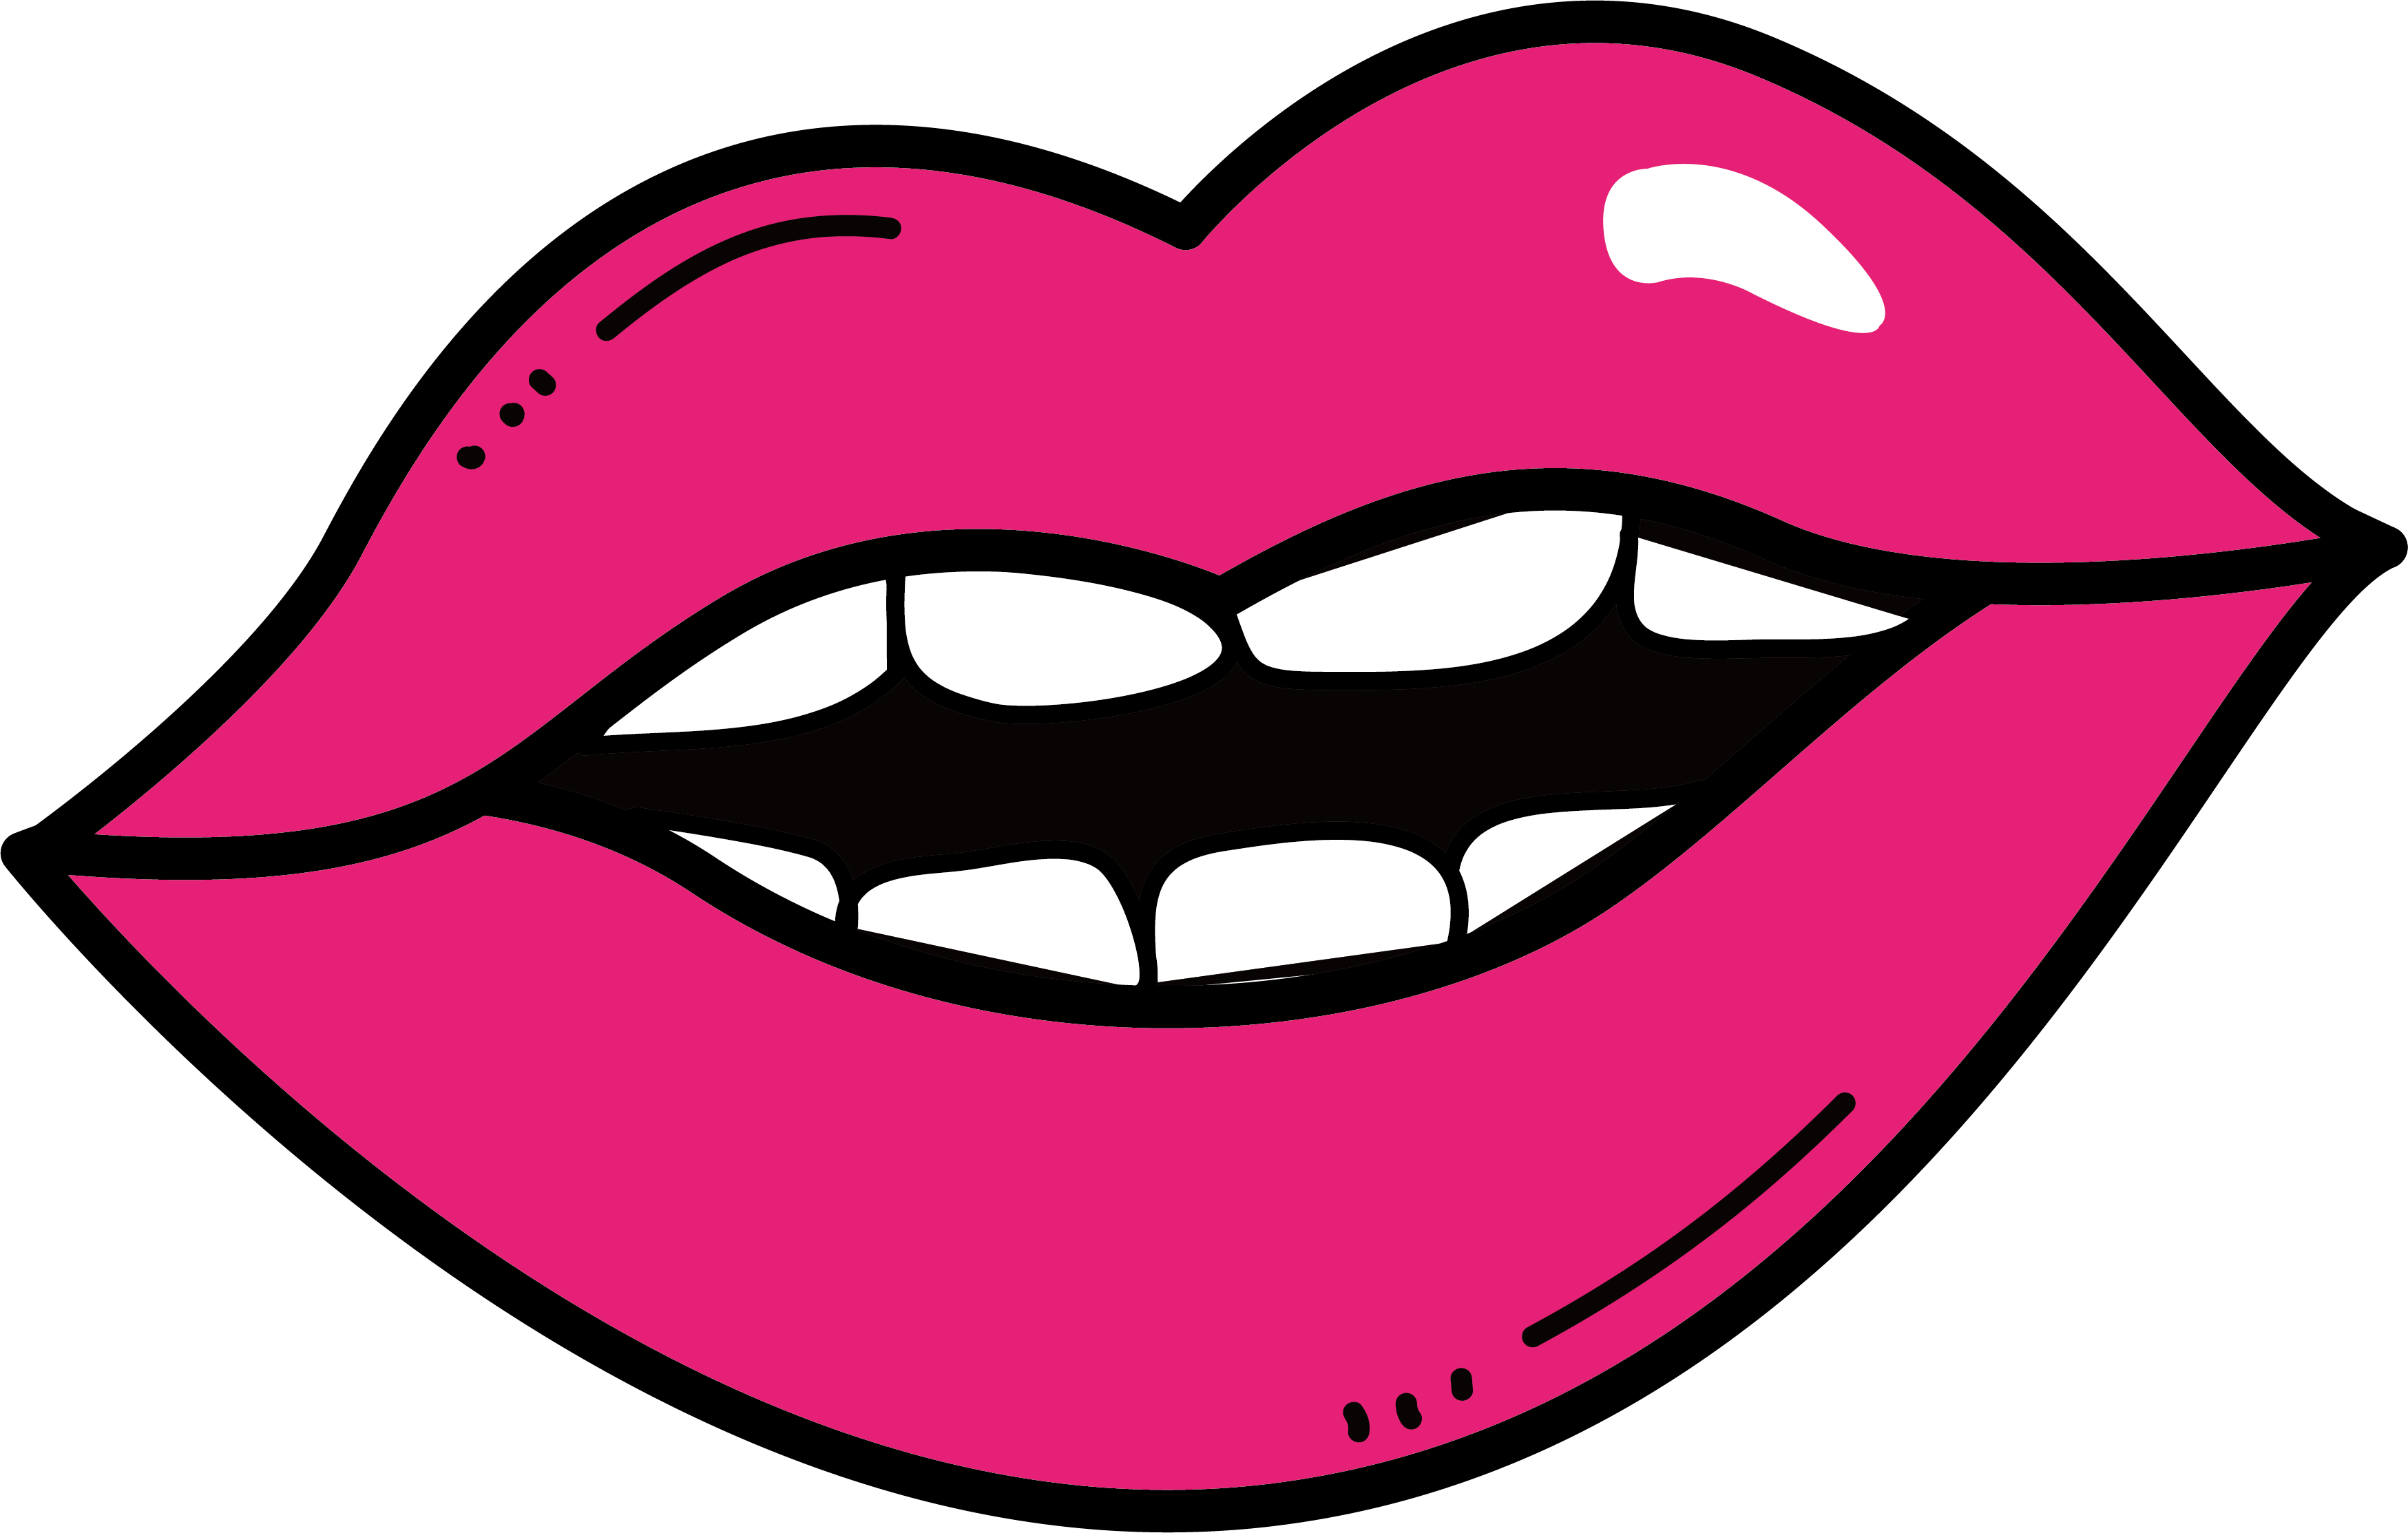 Clip art pink lips. Drawing smirk lip picture black and white download